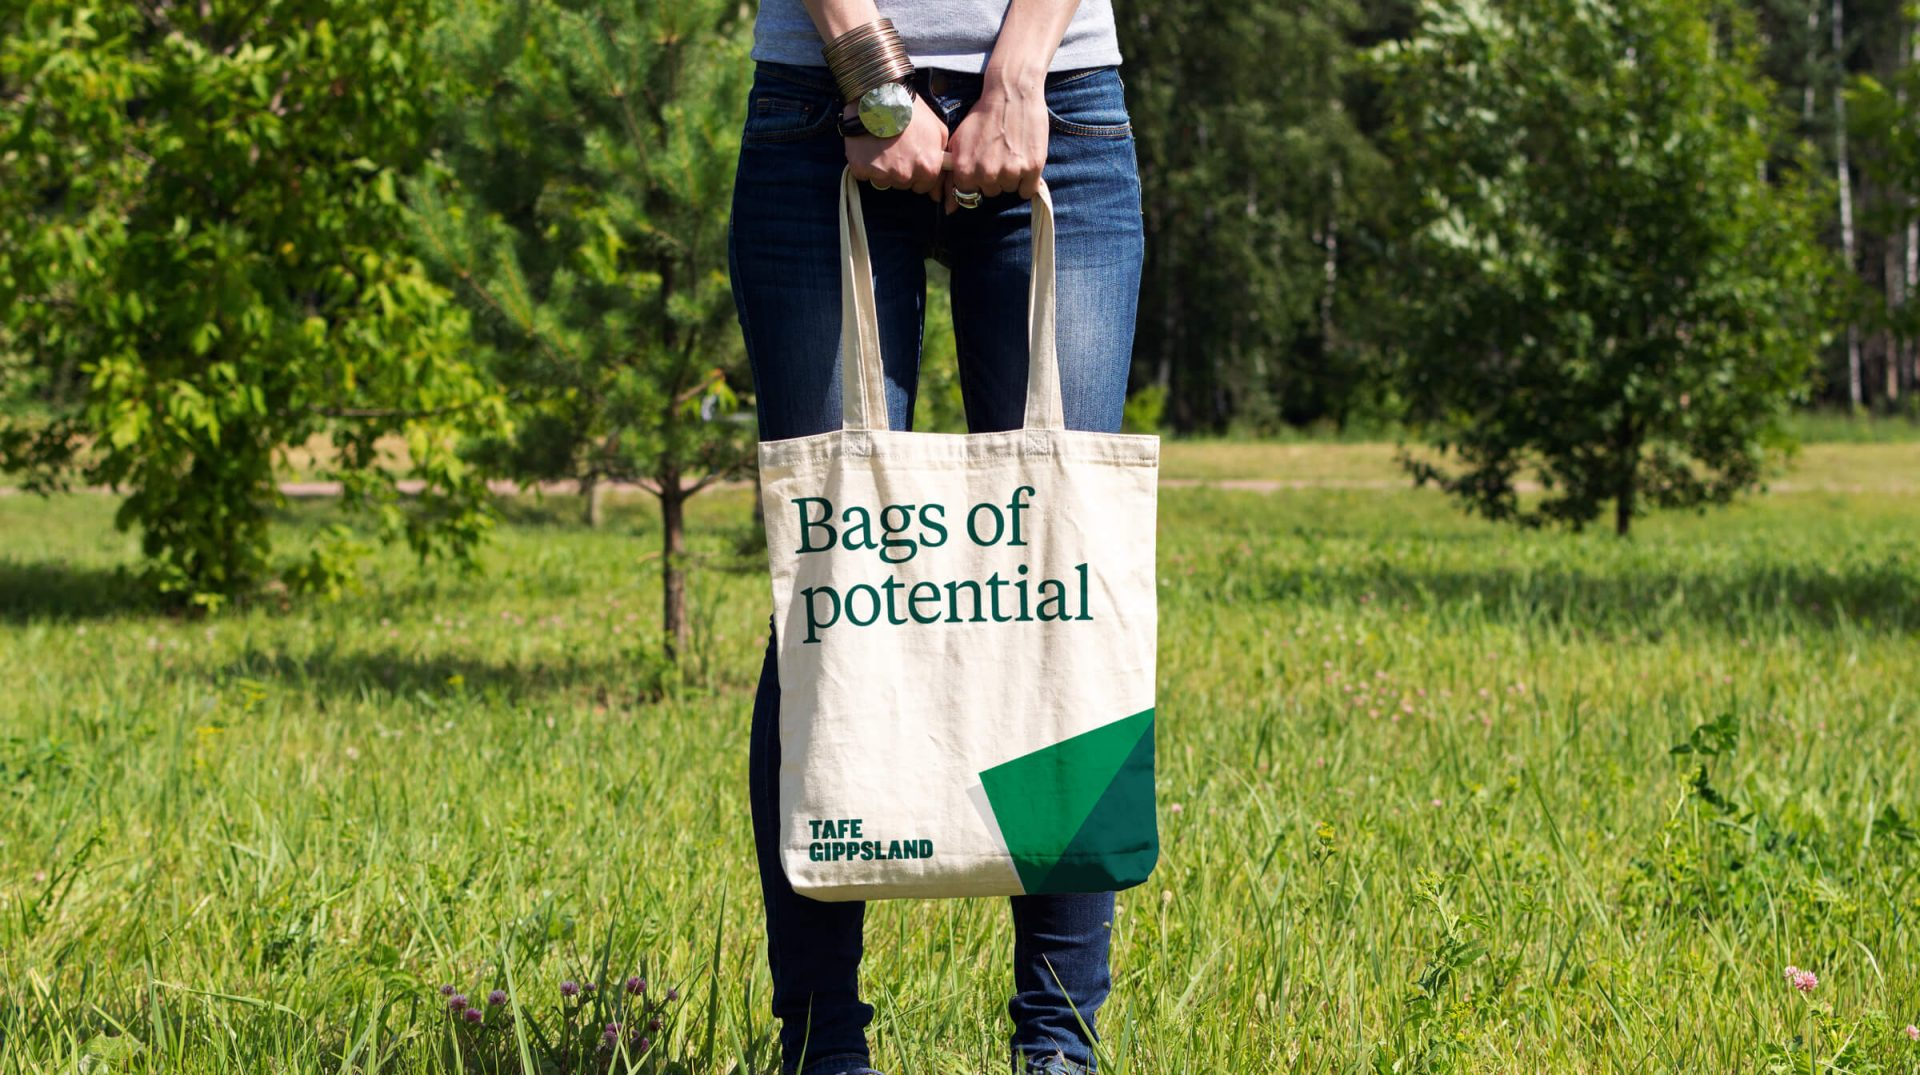 A woman standing in a grassy area holding a canvas bag that says 'Bags of potential'